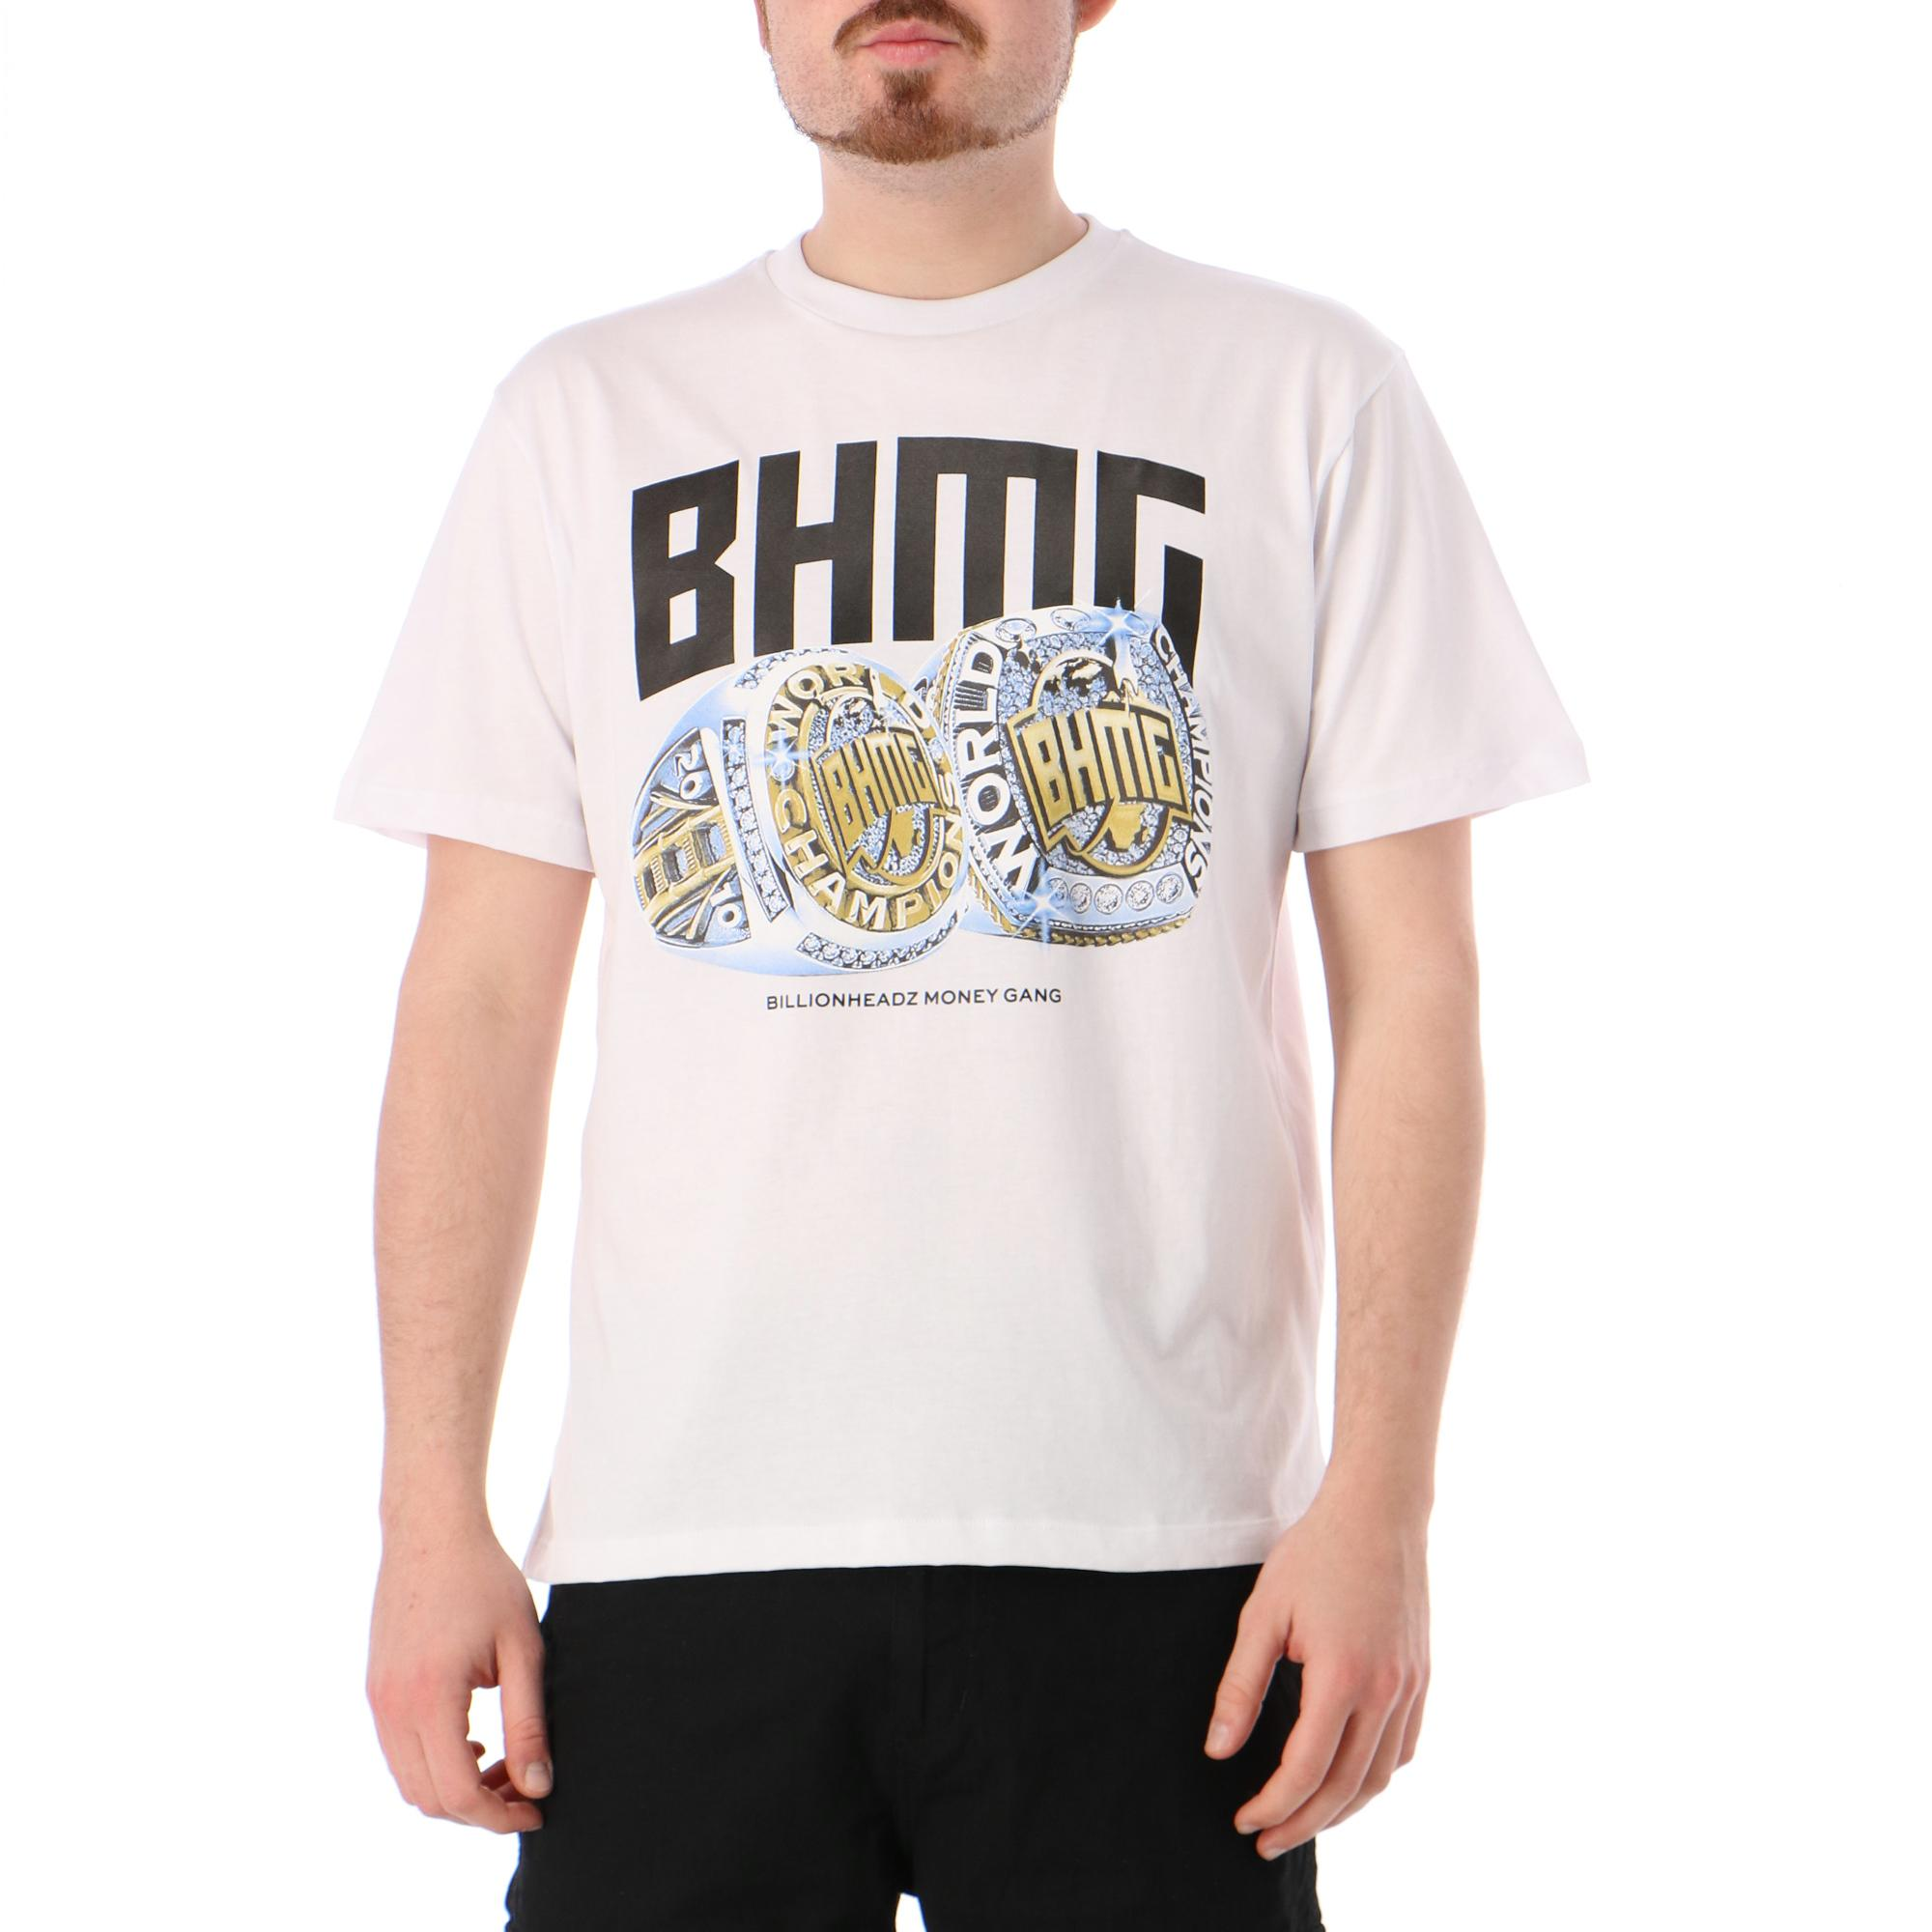 Bhmg T-shirt Jersey WHITE